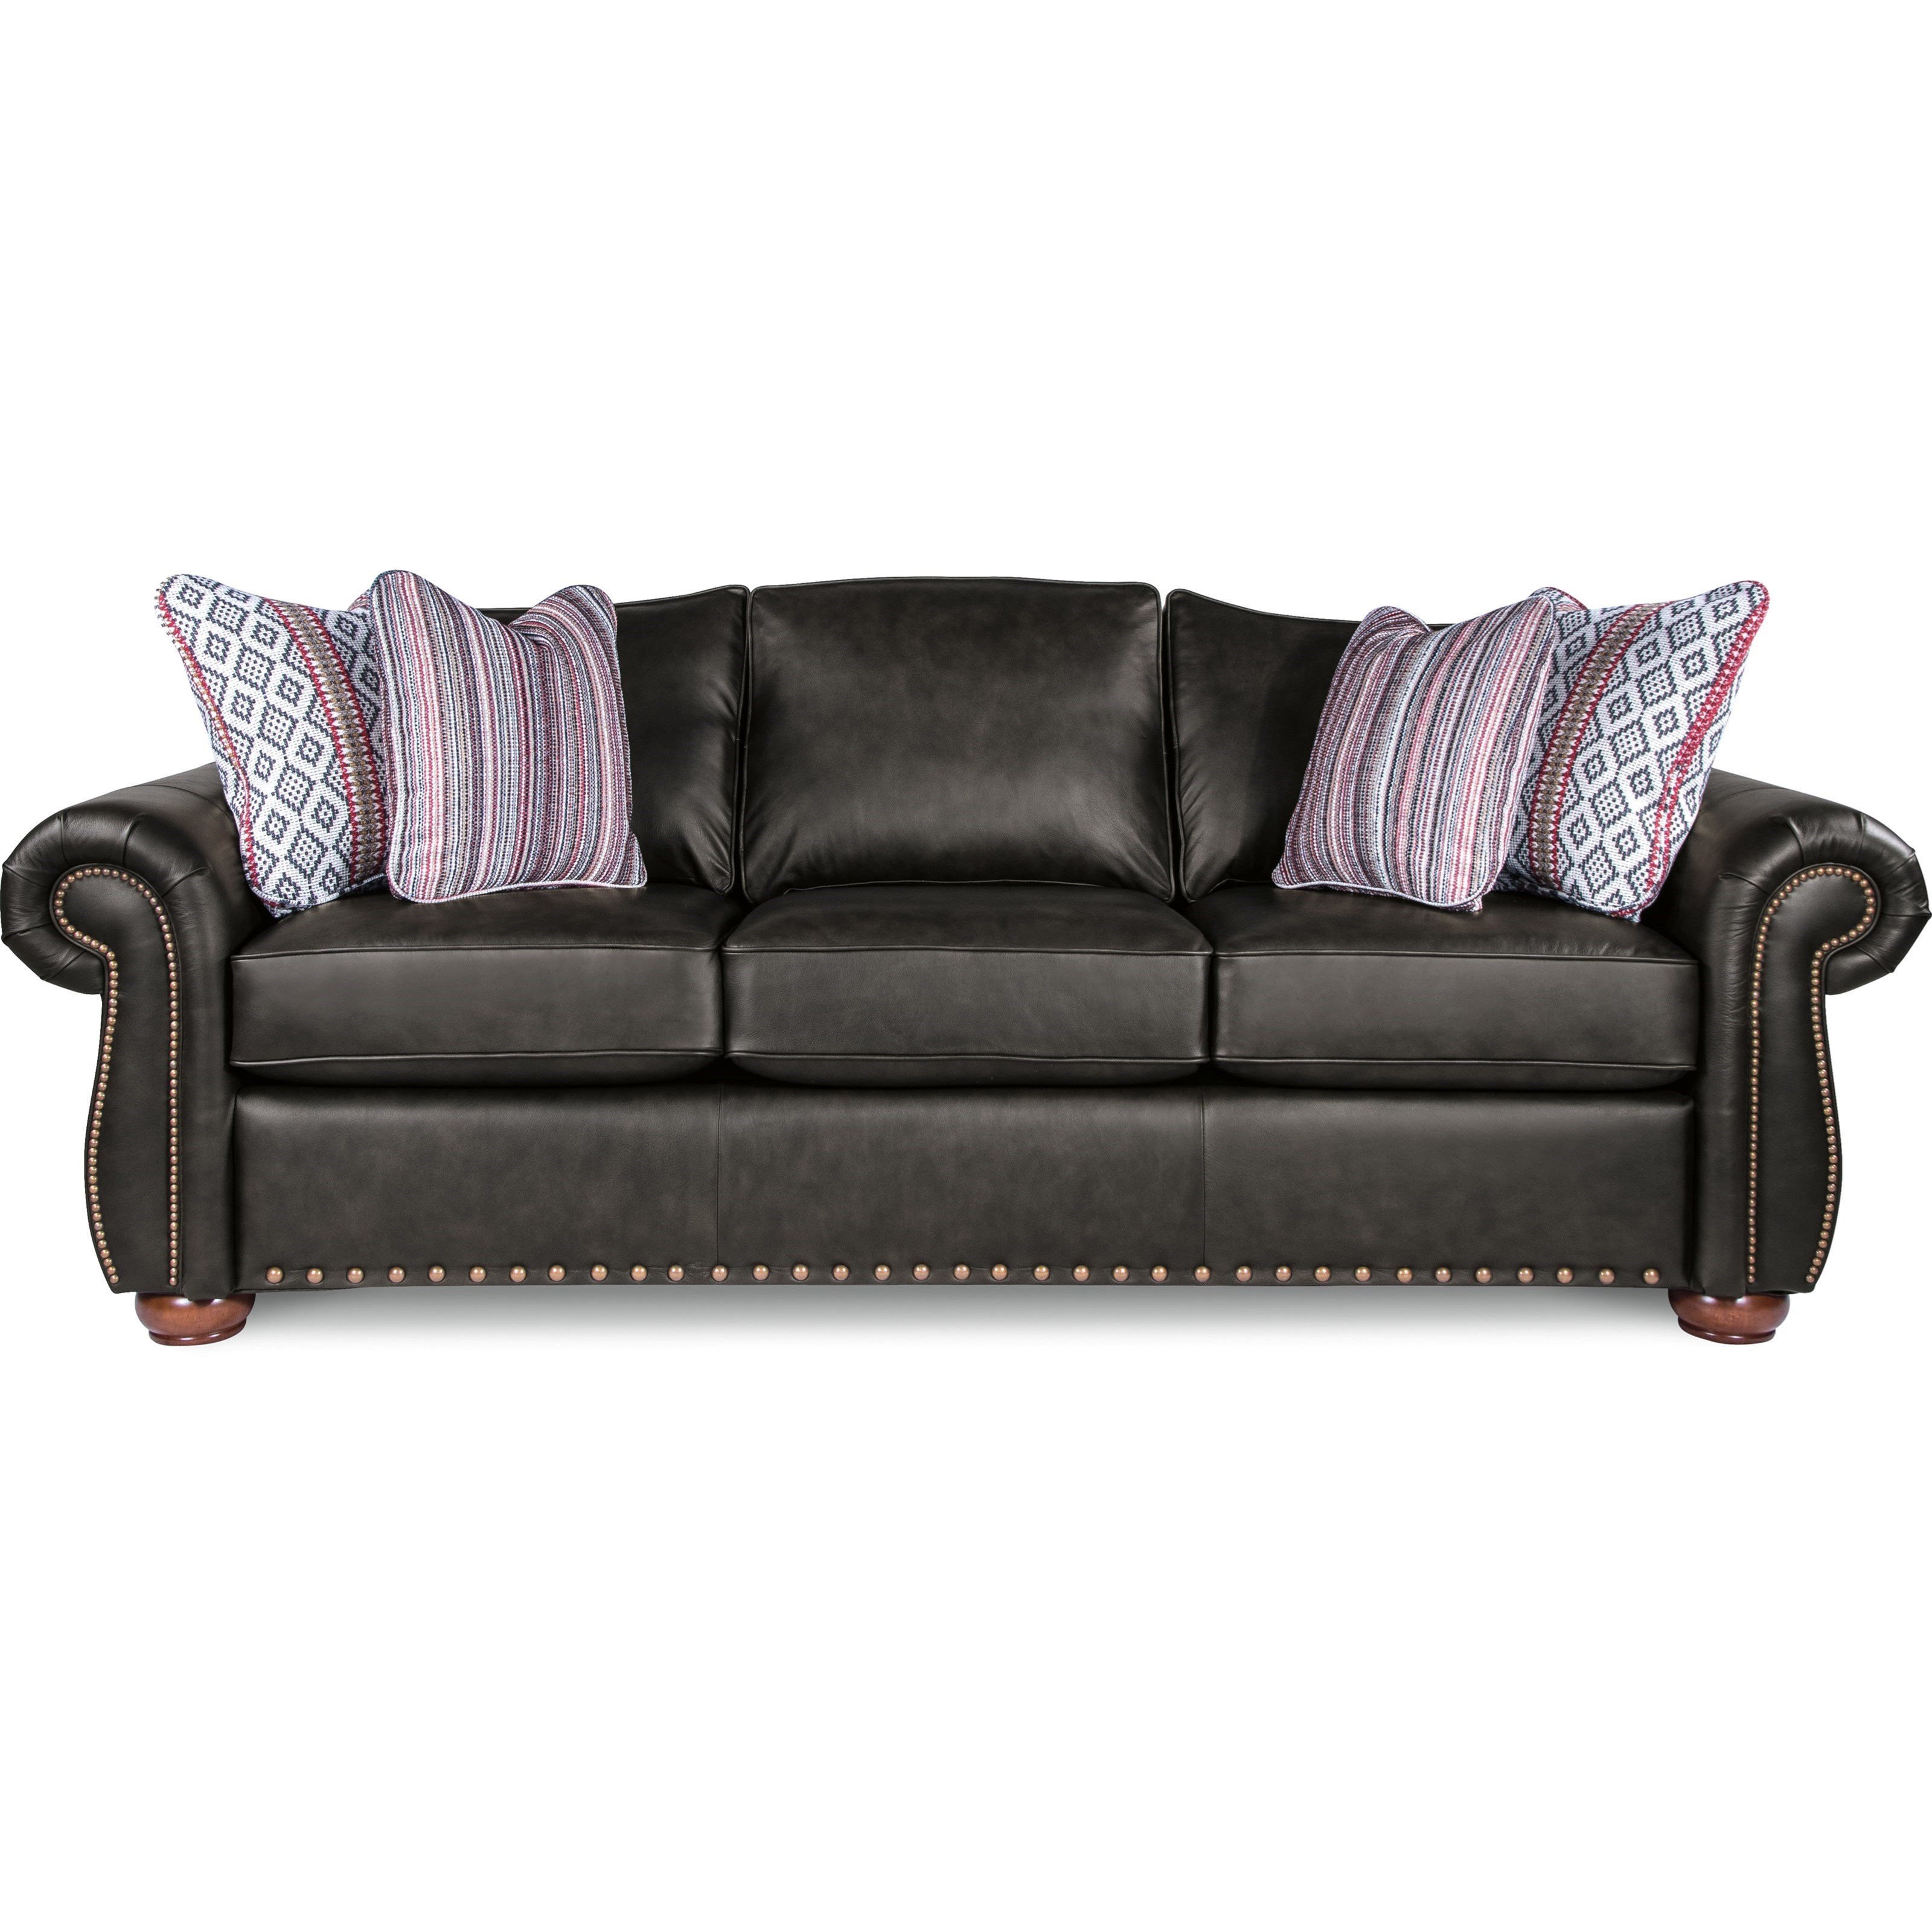 Traditional Sofas Wales